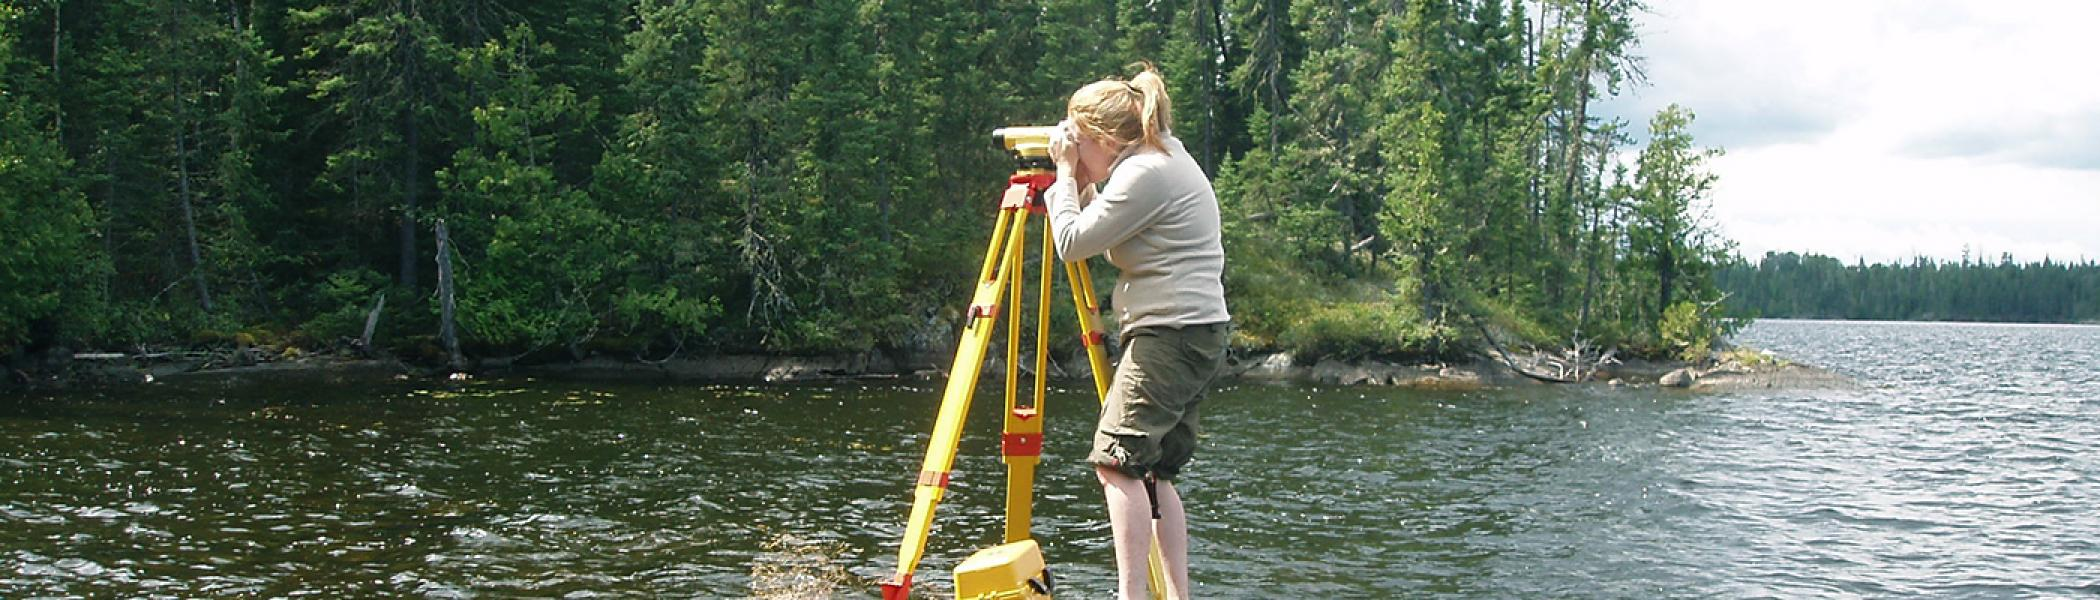 female grad student standing on rock on lake edge looking through tripod doing fieldwork on a sunny day